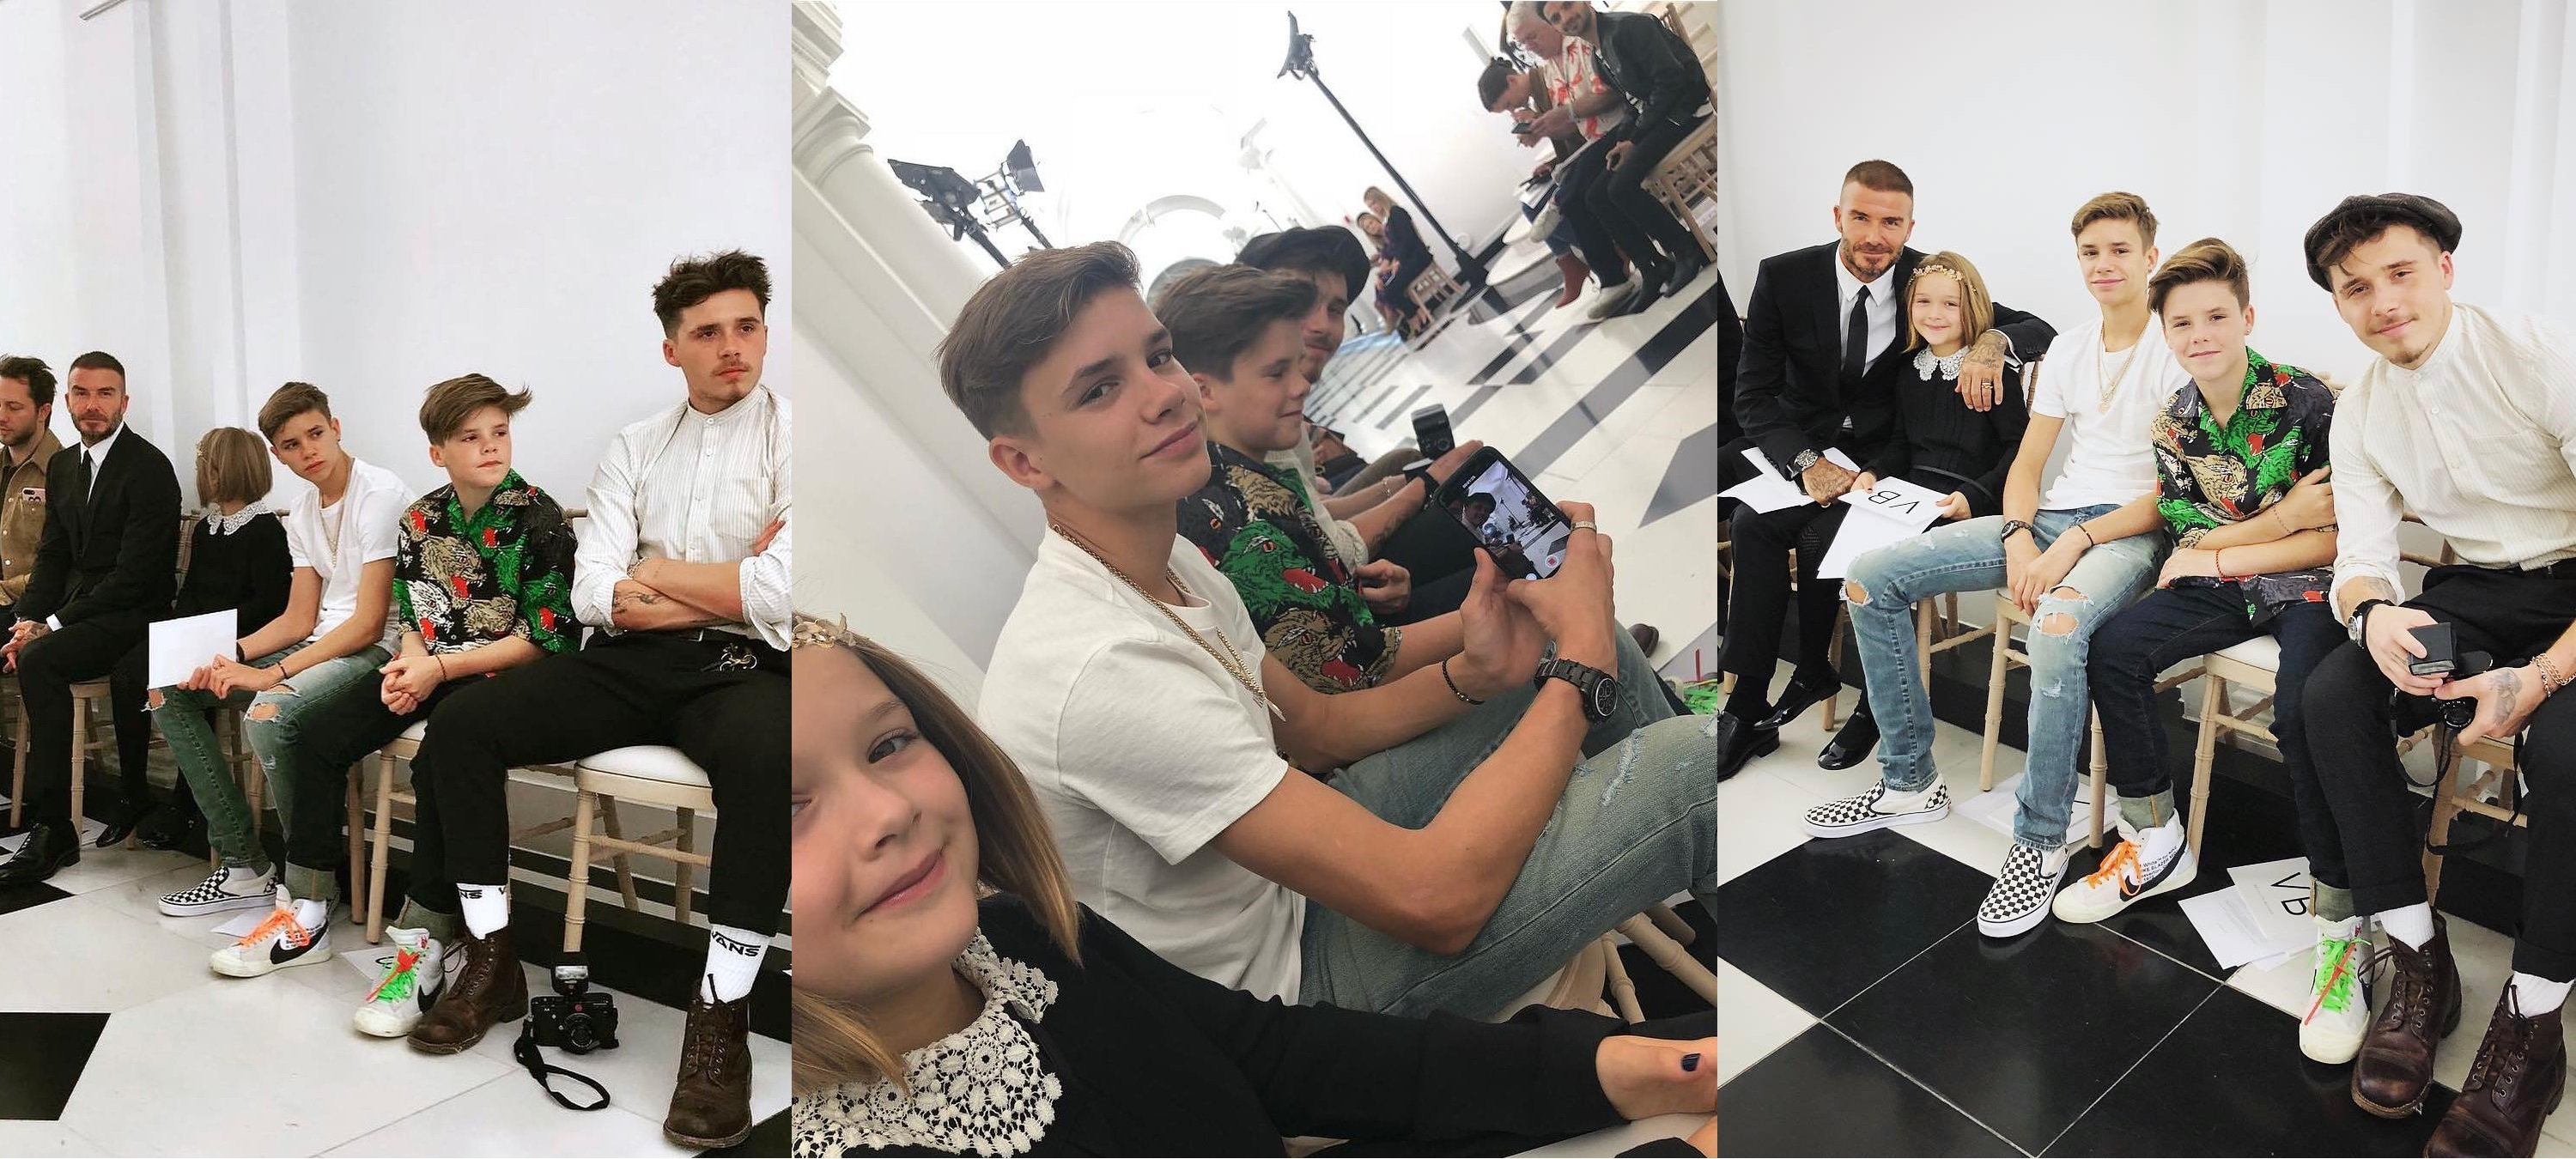 SPOTTED: The Beckham Family Supporting Victoria's First London Fashion Week Show